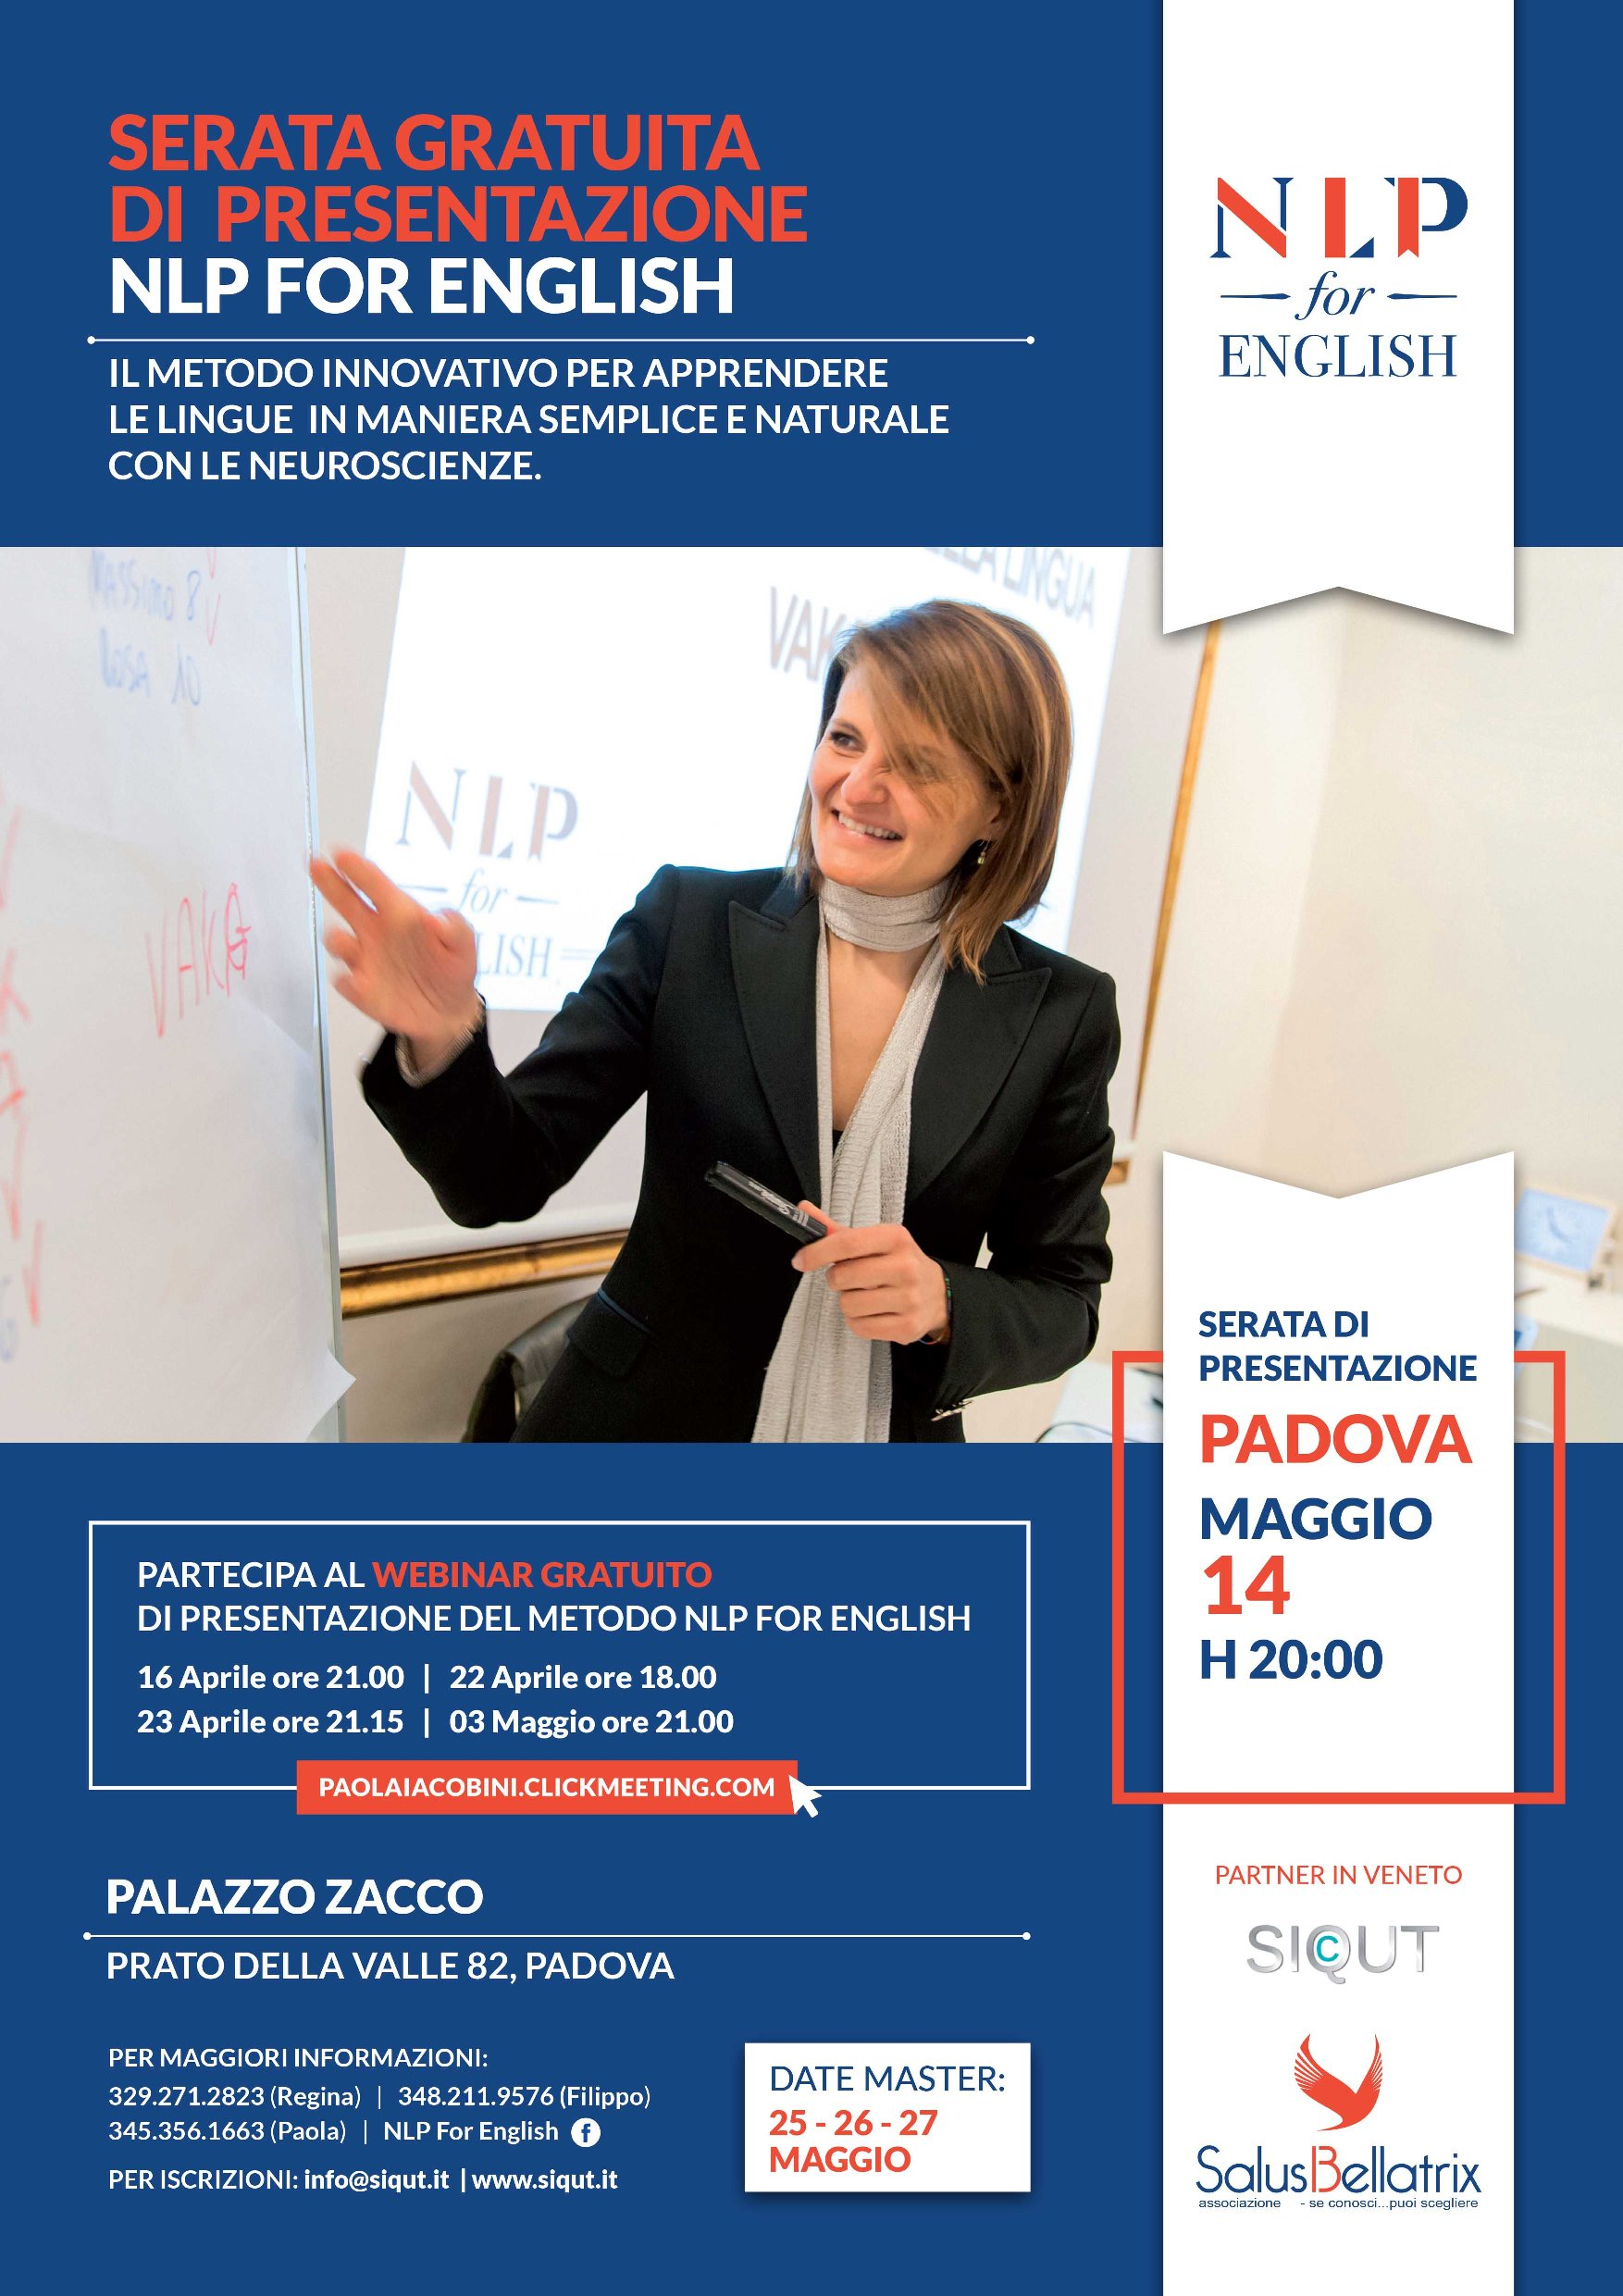 Serata di presentazione NLP for English – Padova